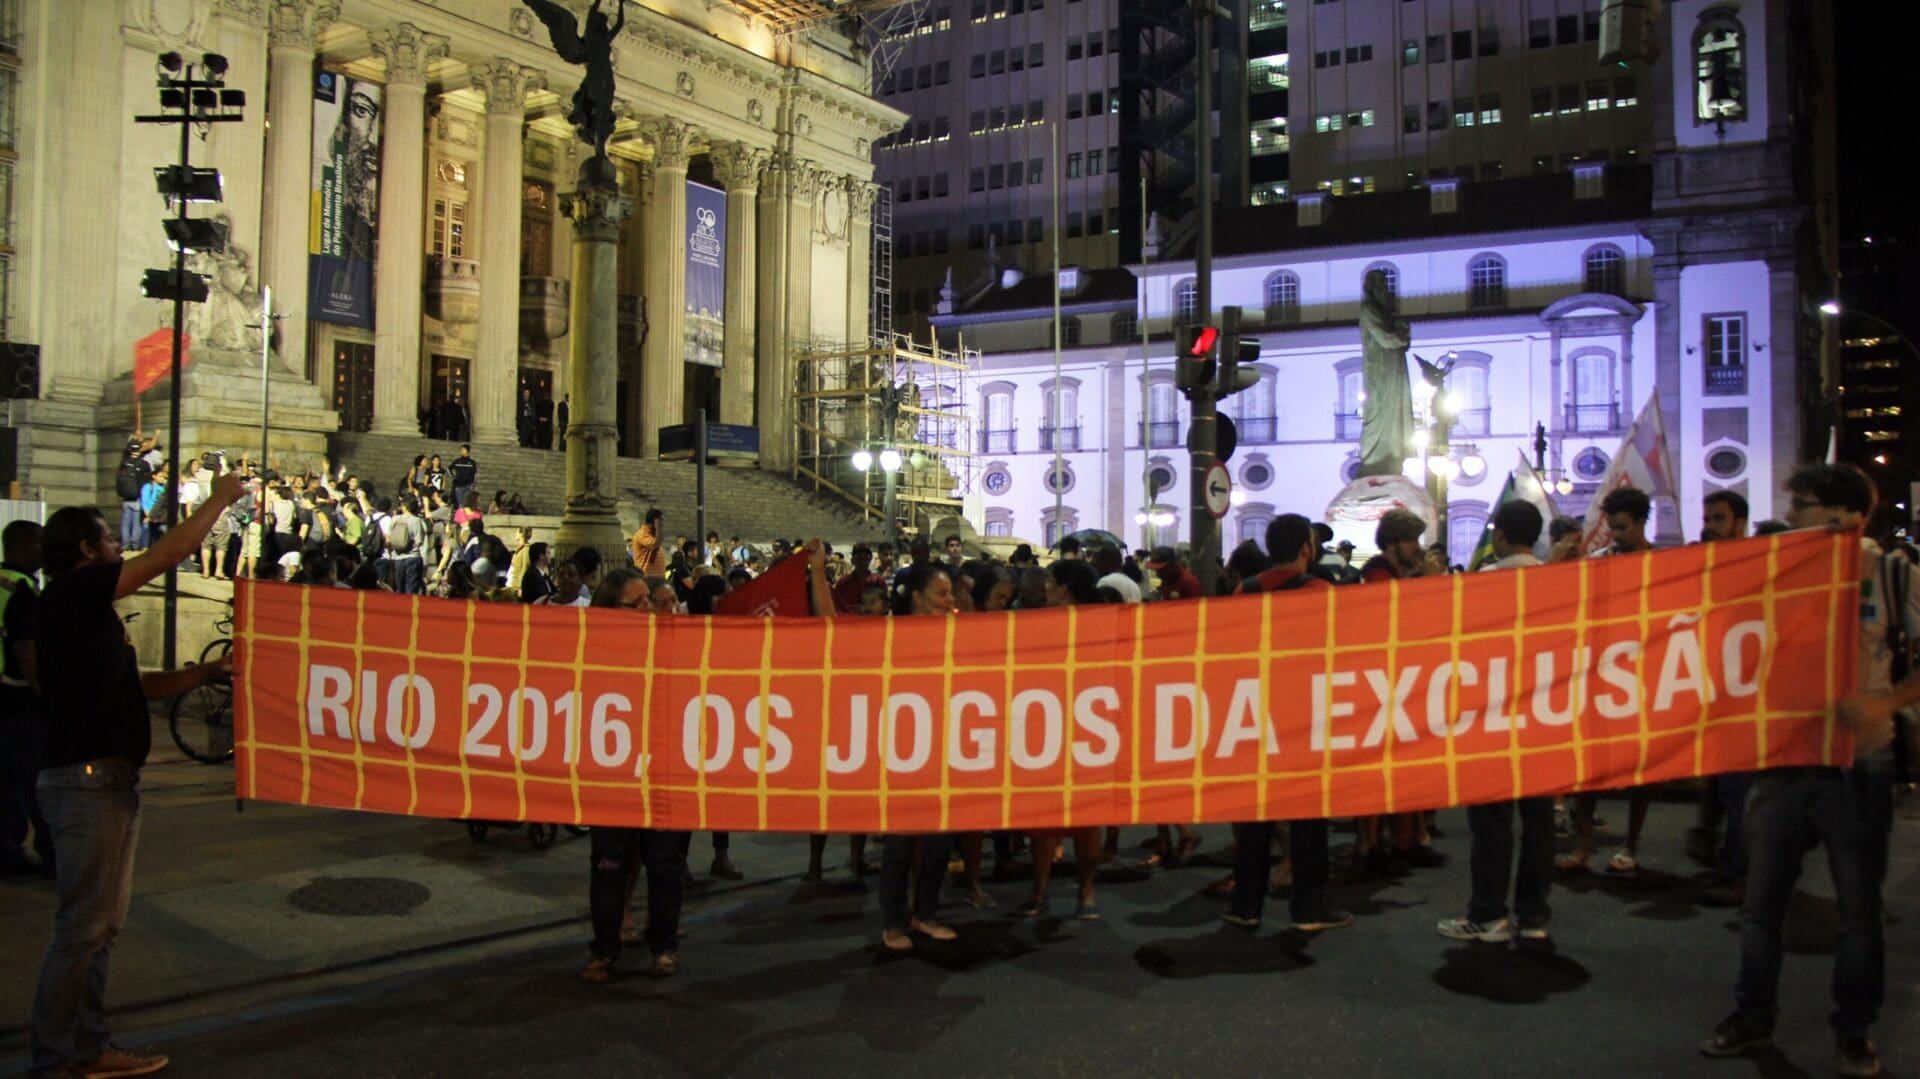 Demonstrators in front of the Parlemts building in Rio with a poster with the inscription: Rio 2016 - Os Jogos da Exclusao.